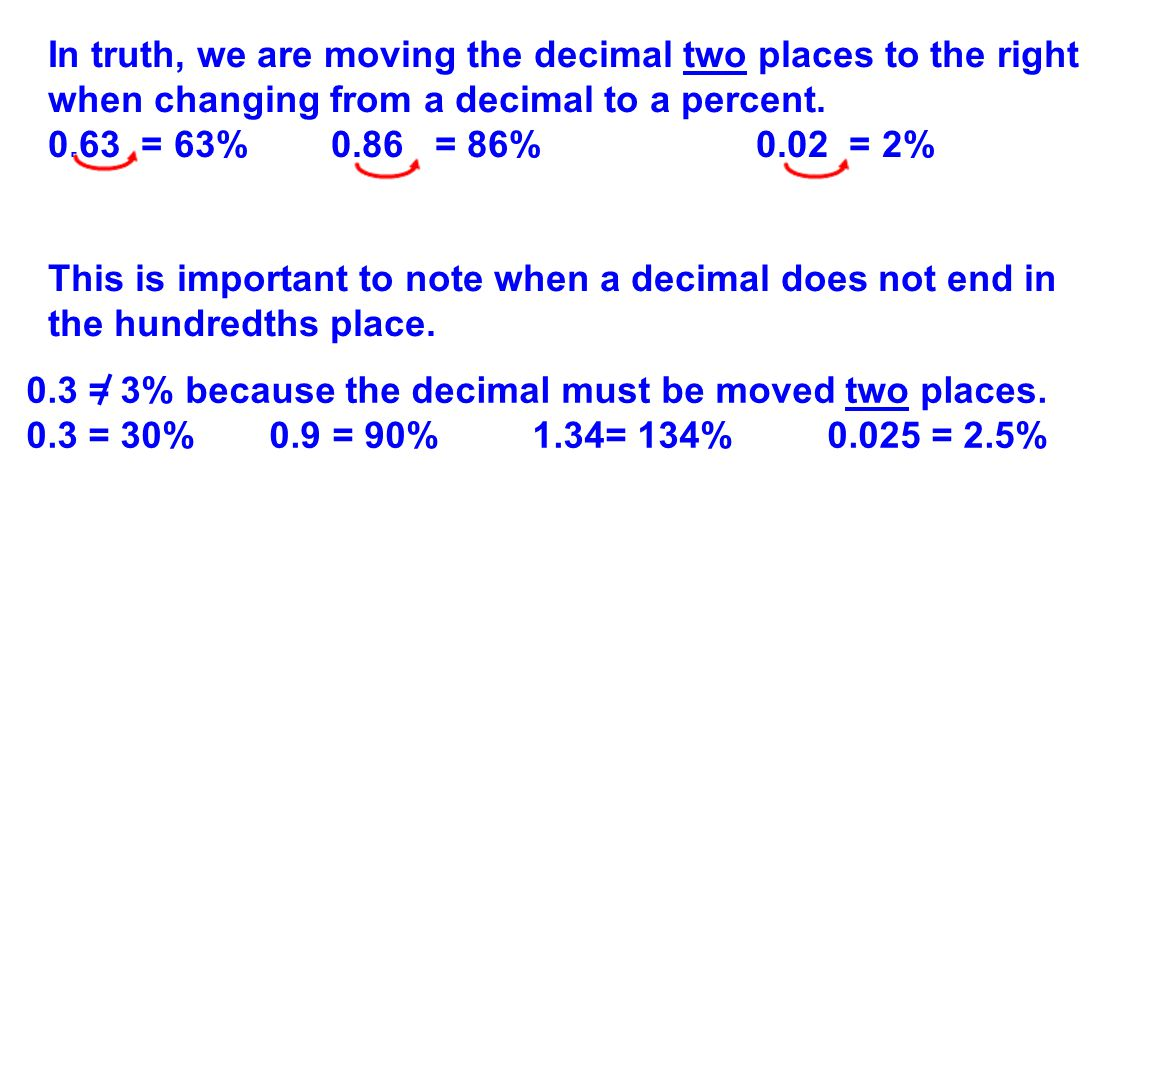 In truth, we are moving the decimal two places to the right when changing from a decimal to a percent.